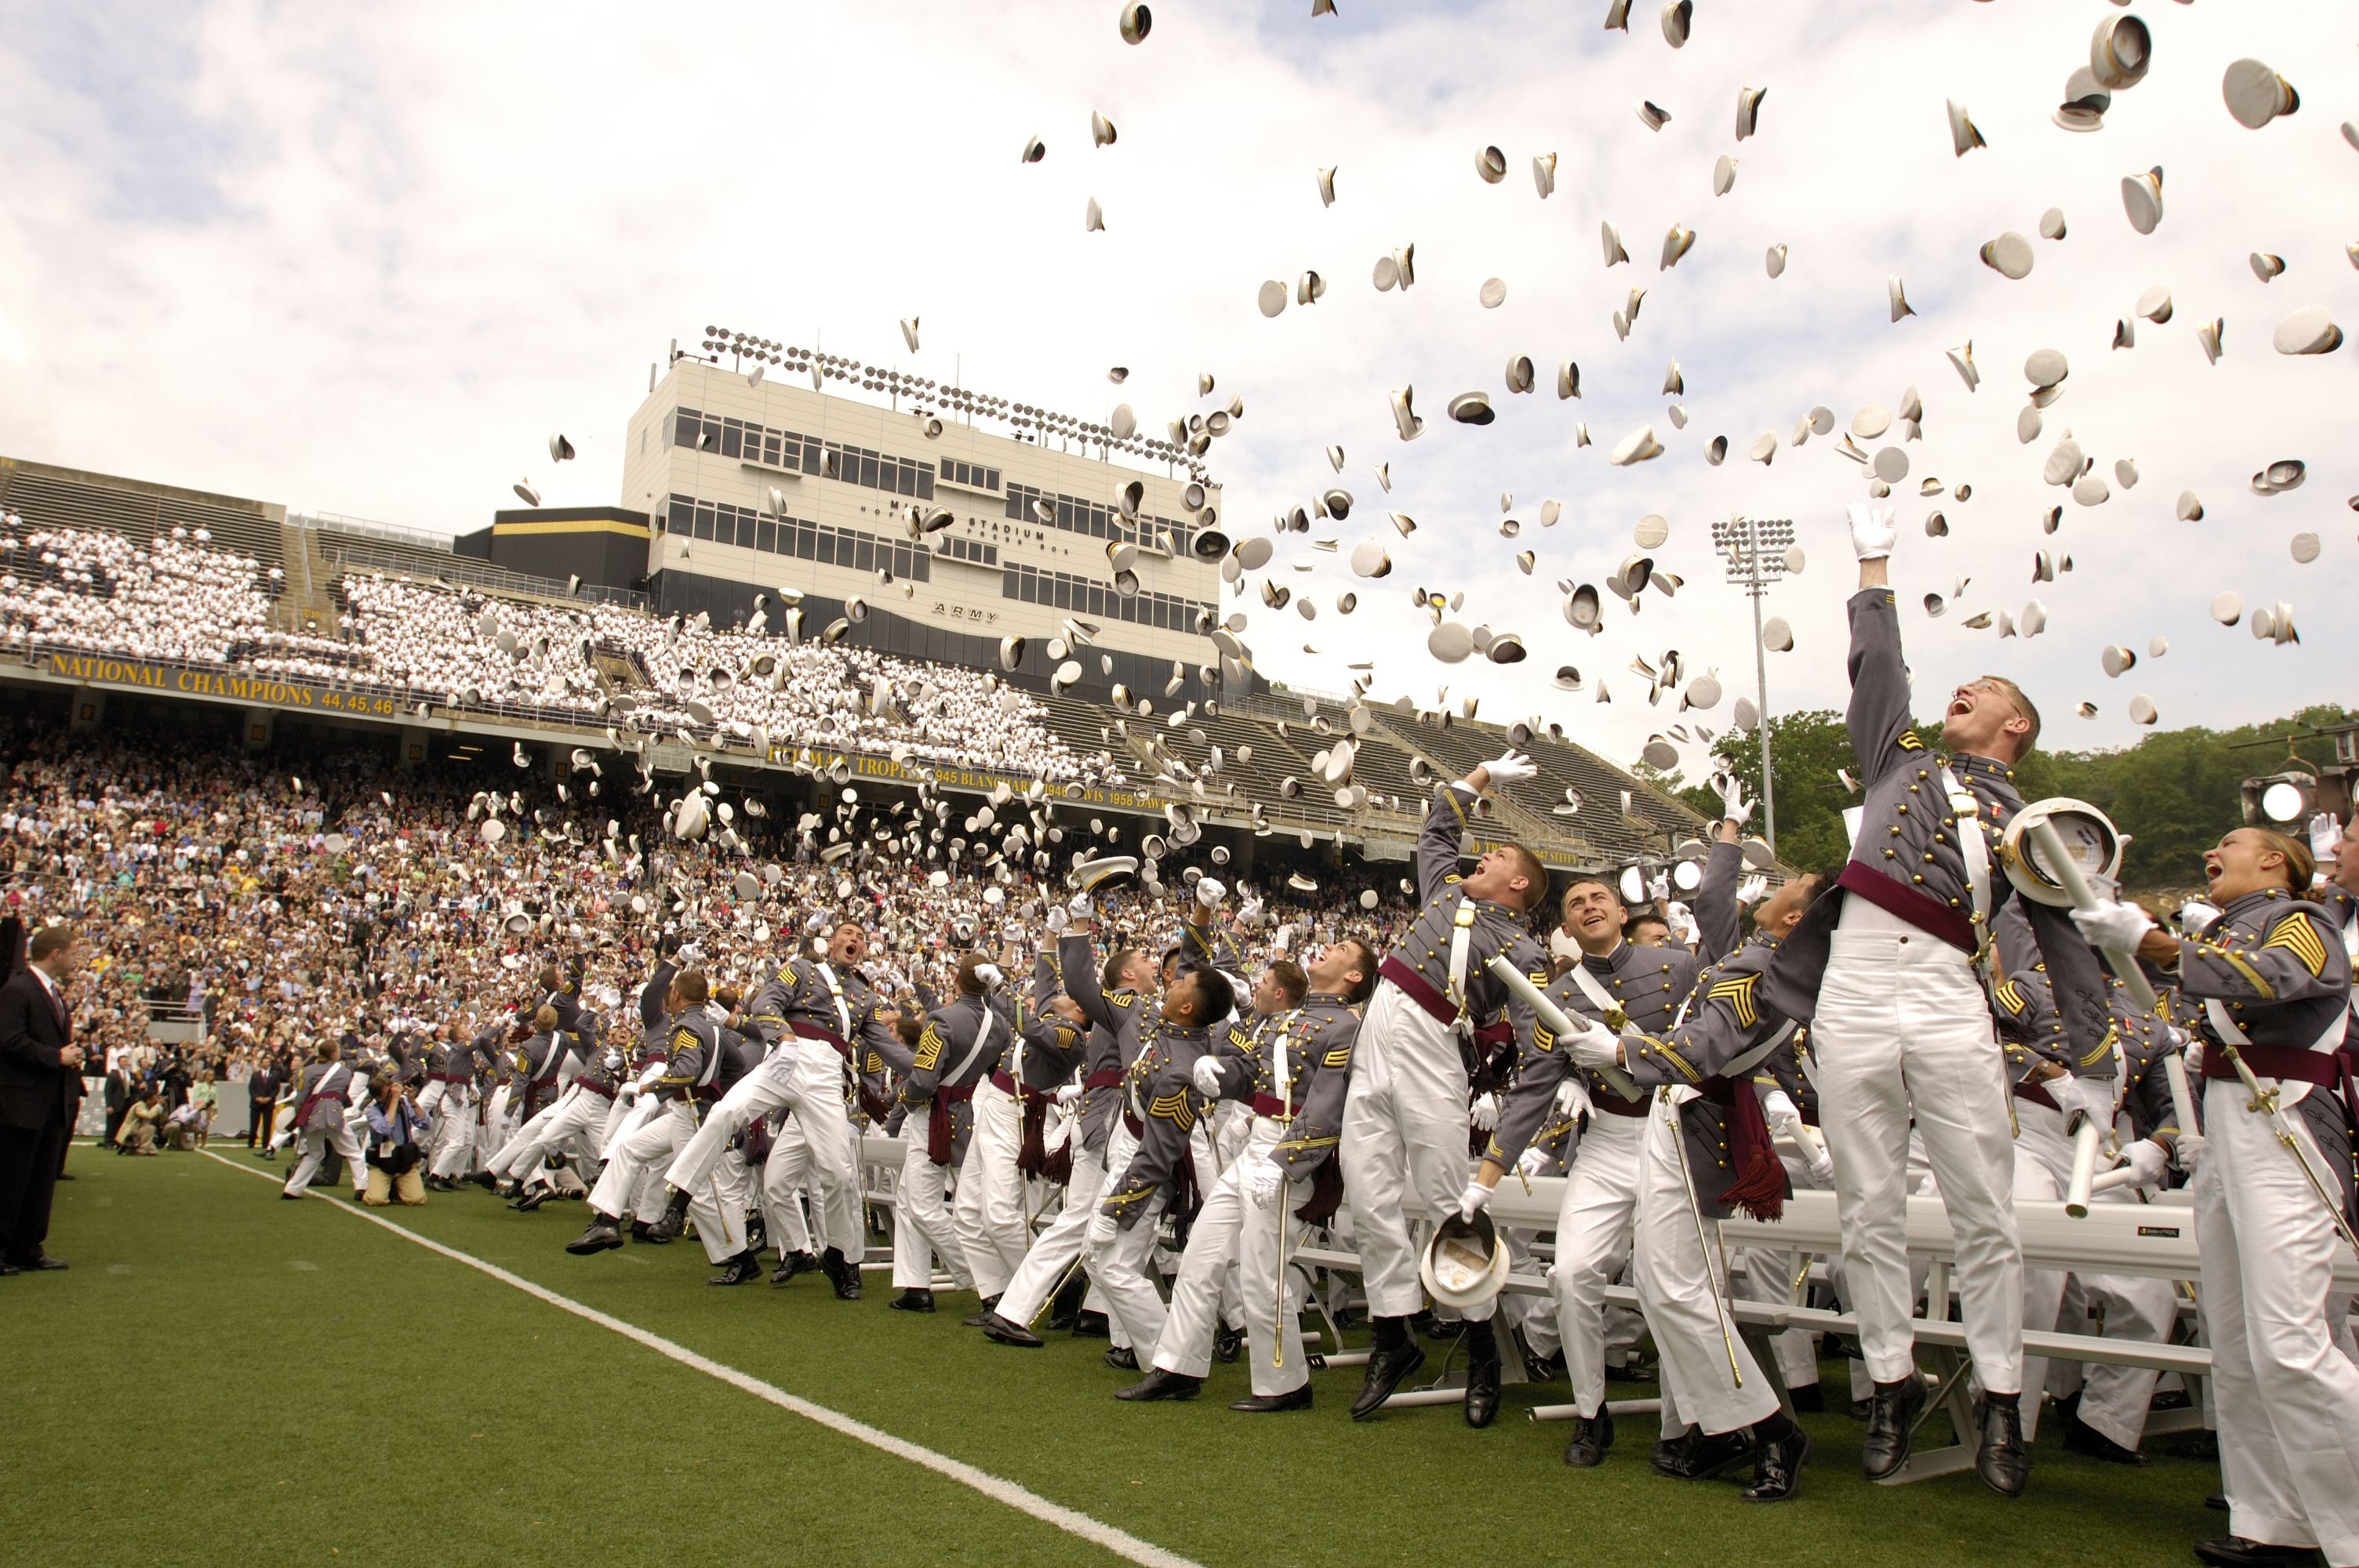 Students at the U.S. Military Academy at West Point f2313585fc77